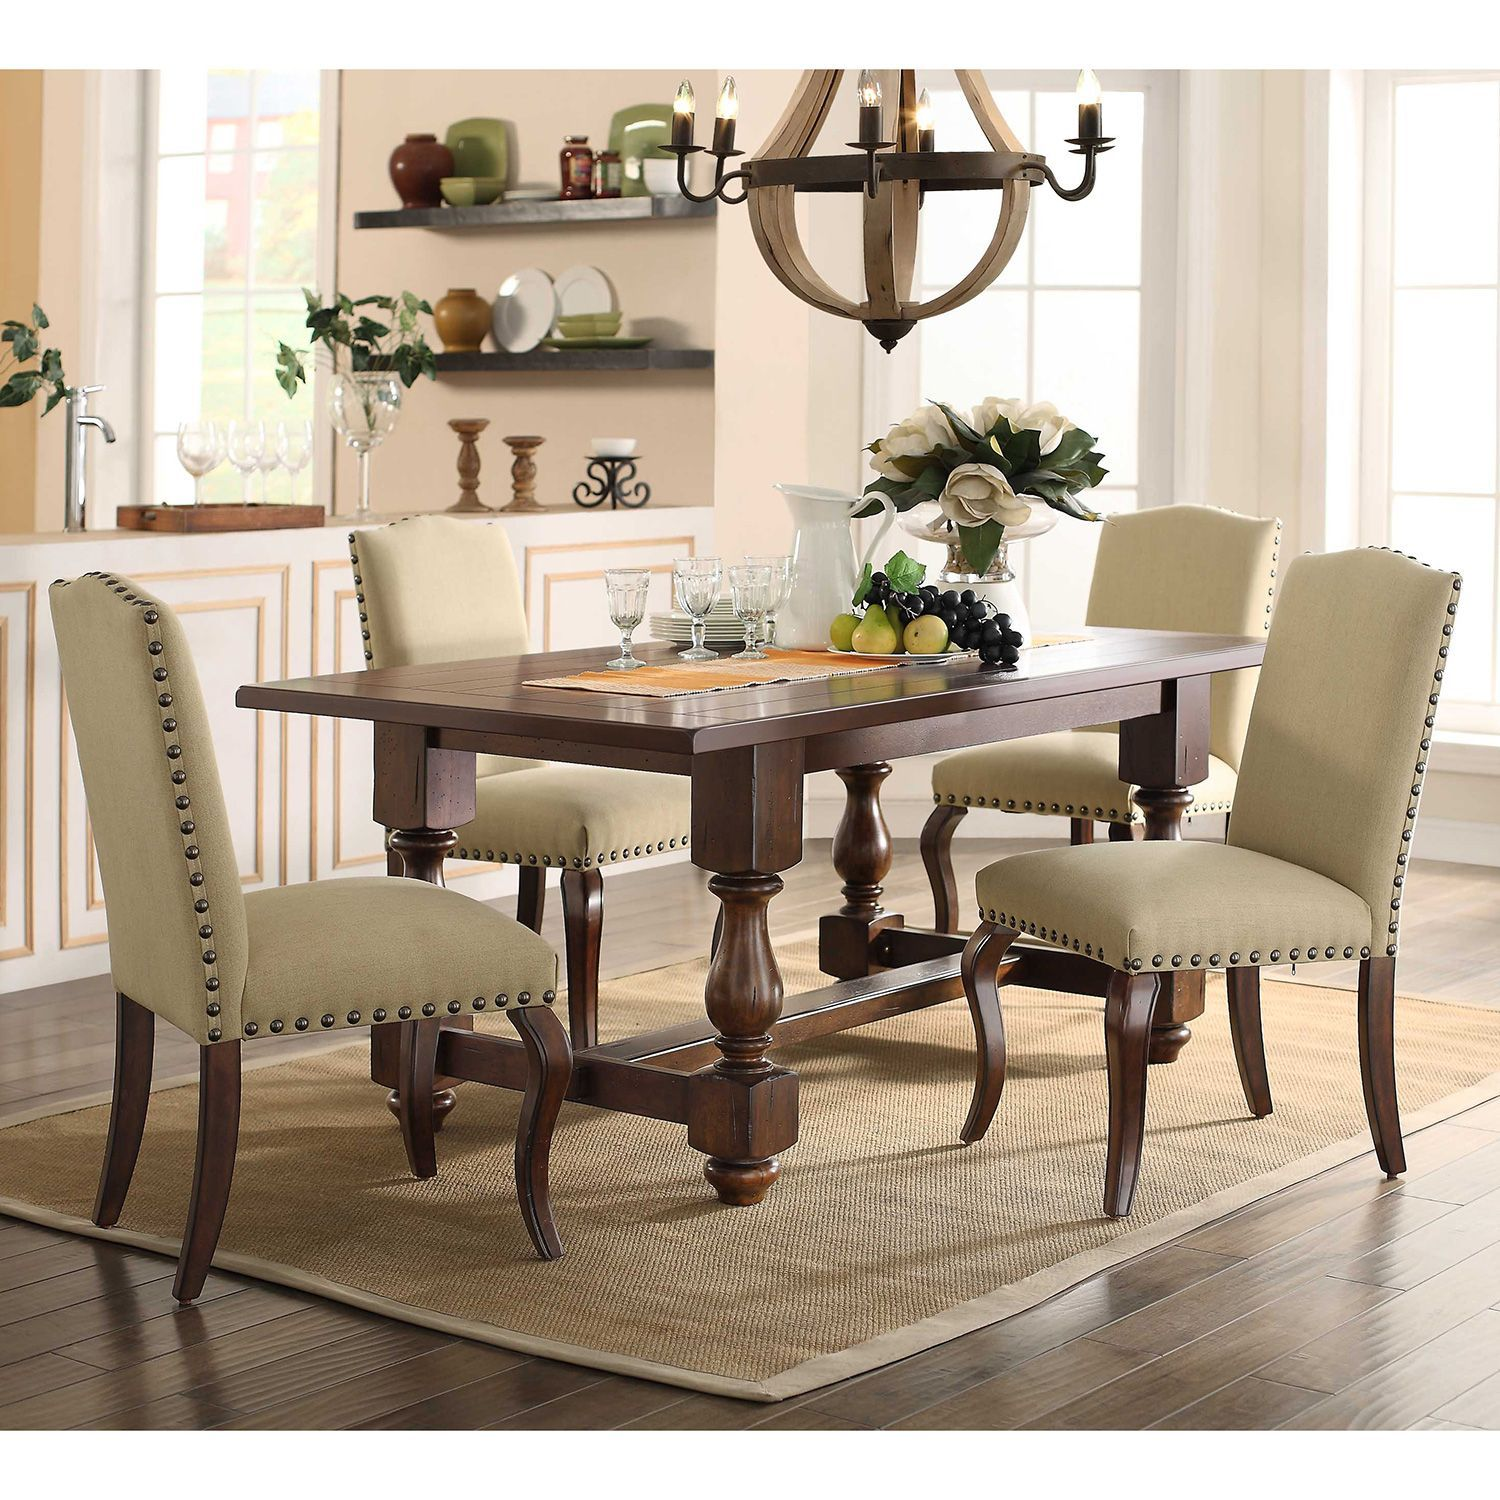 Atteberry Dining Set 5 Pc Dining Room Chairs Dining Table